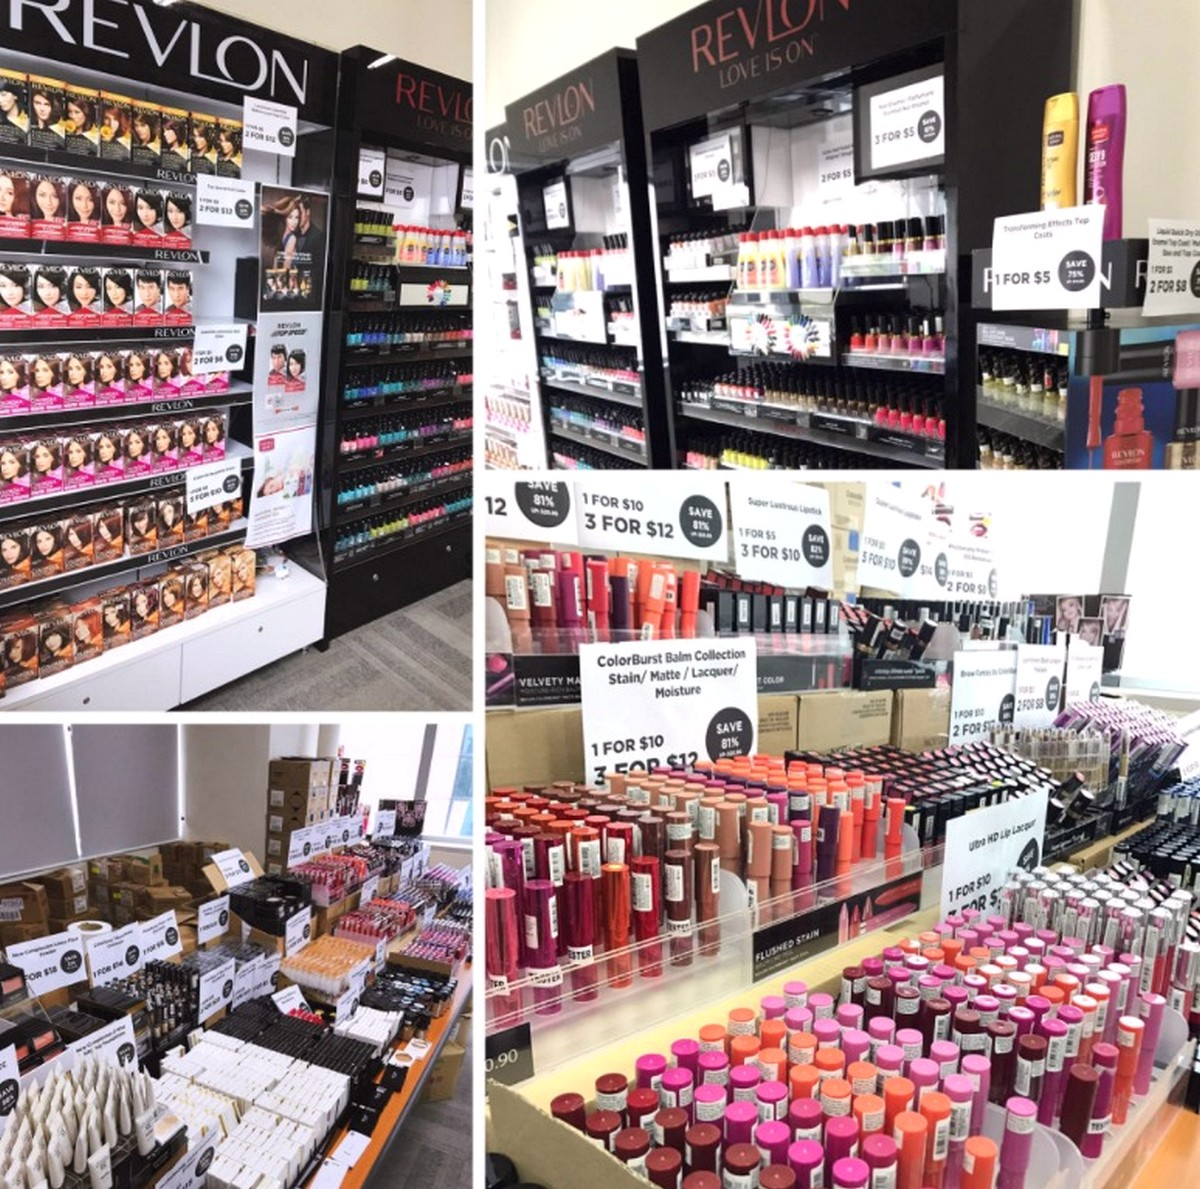 Revlon-Singapore-Photos-Facebook-warehouse-sale 5-7 May 2021: Revlon Beauty Warehouse Sale at Tannery Road! Up to 80% OFF Cosmetics & Hair Products!